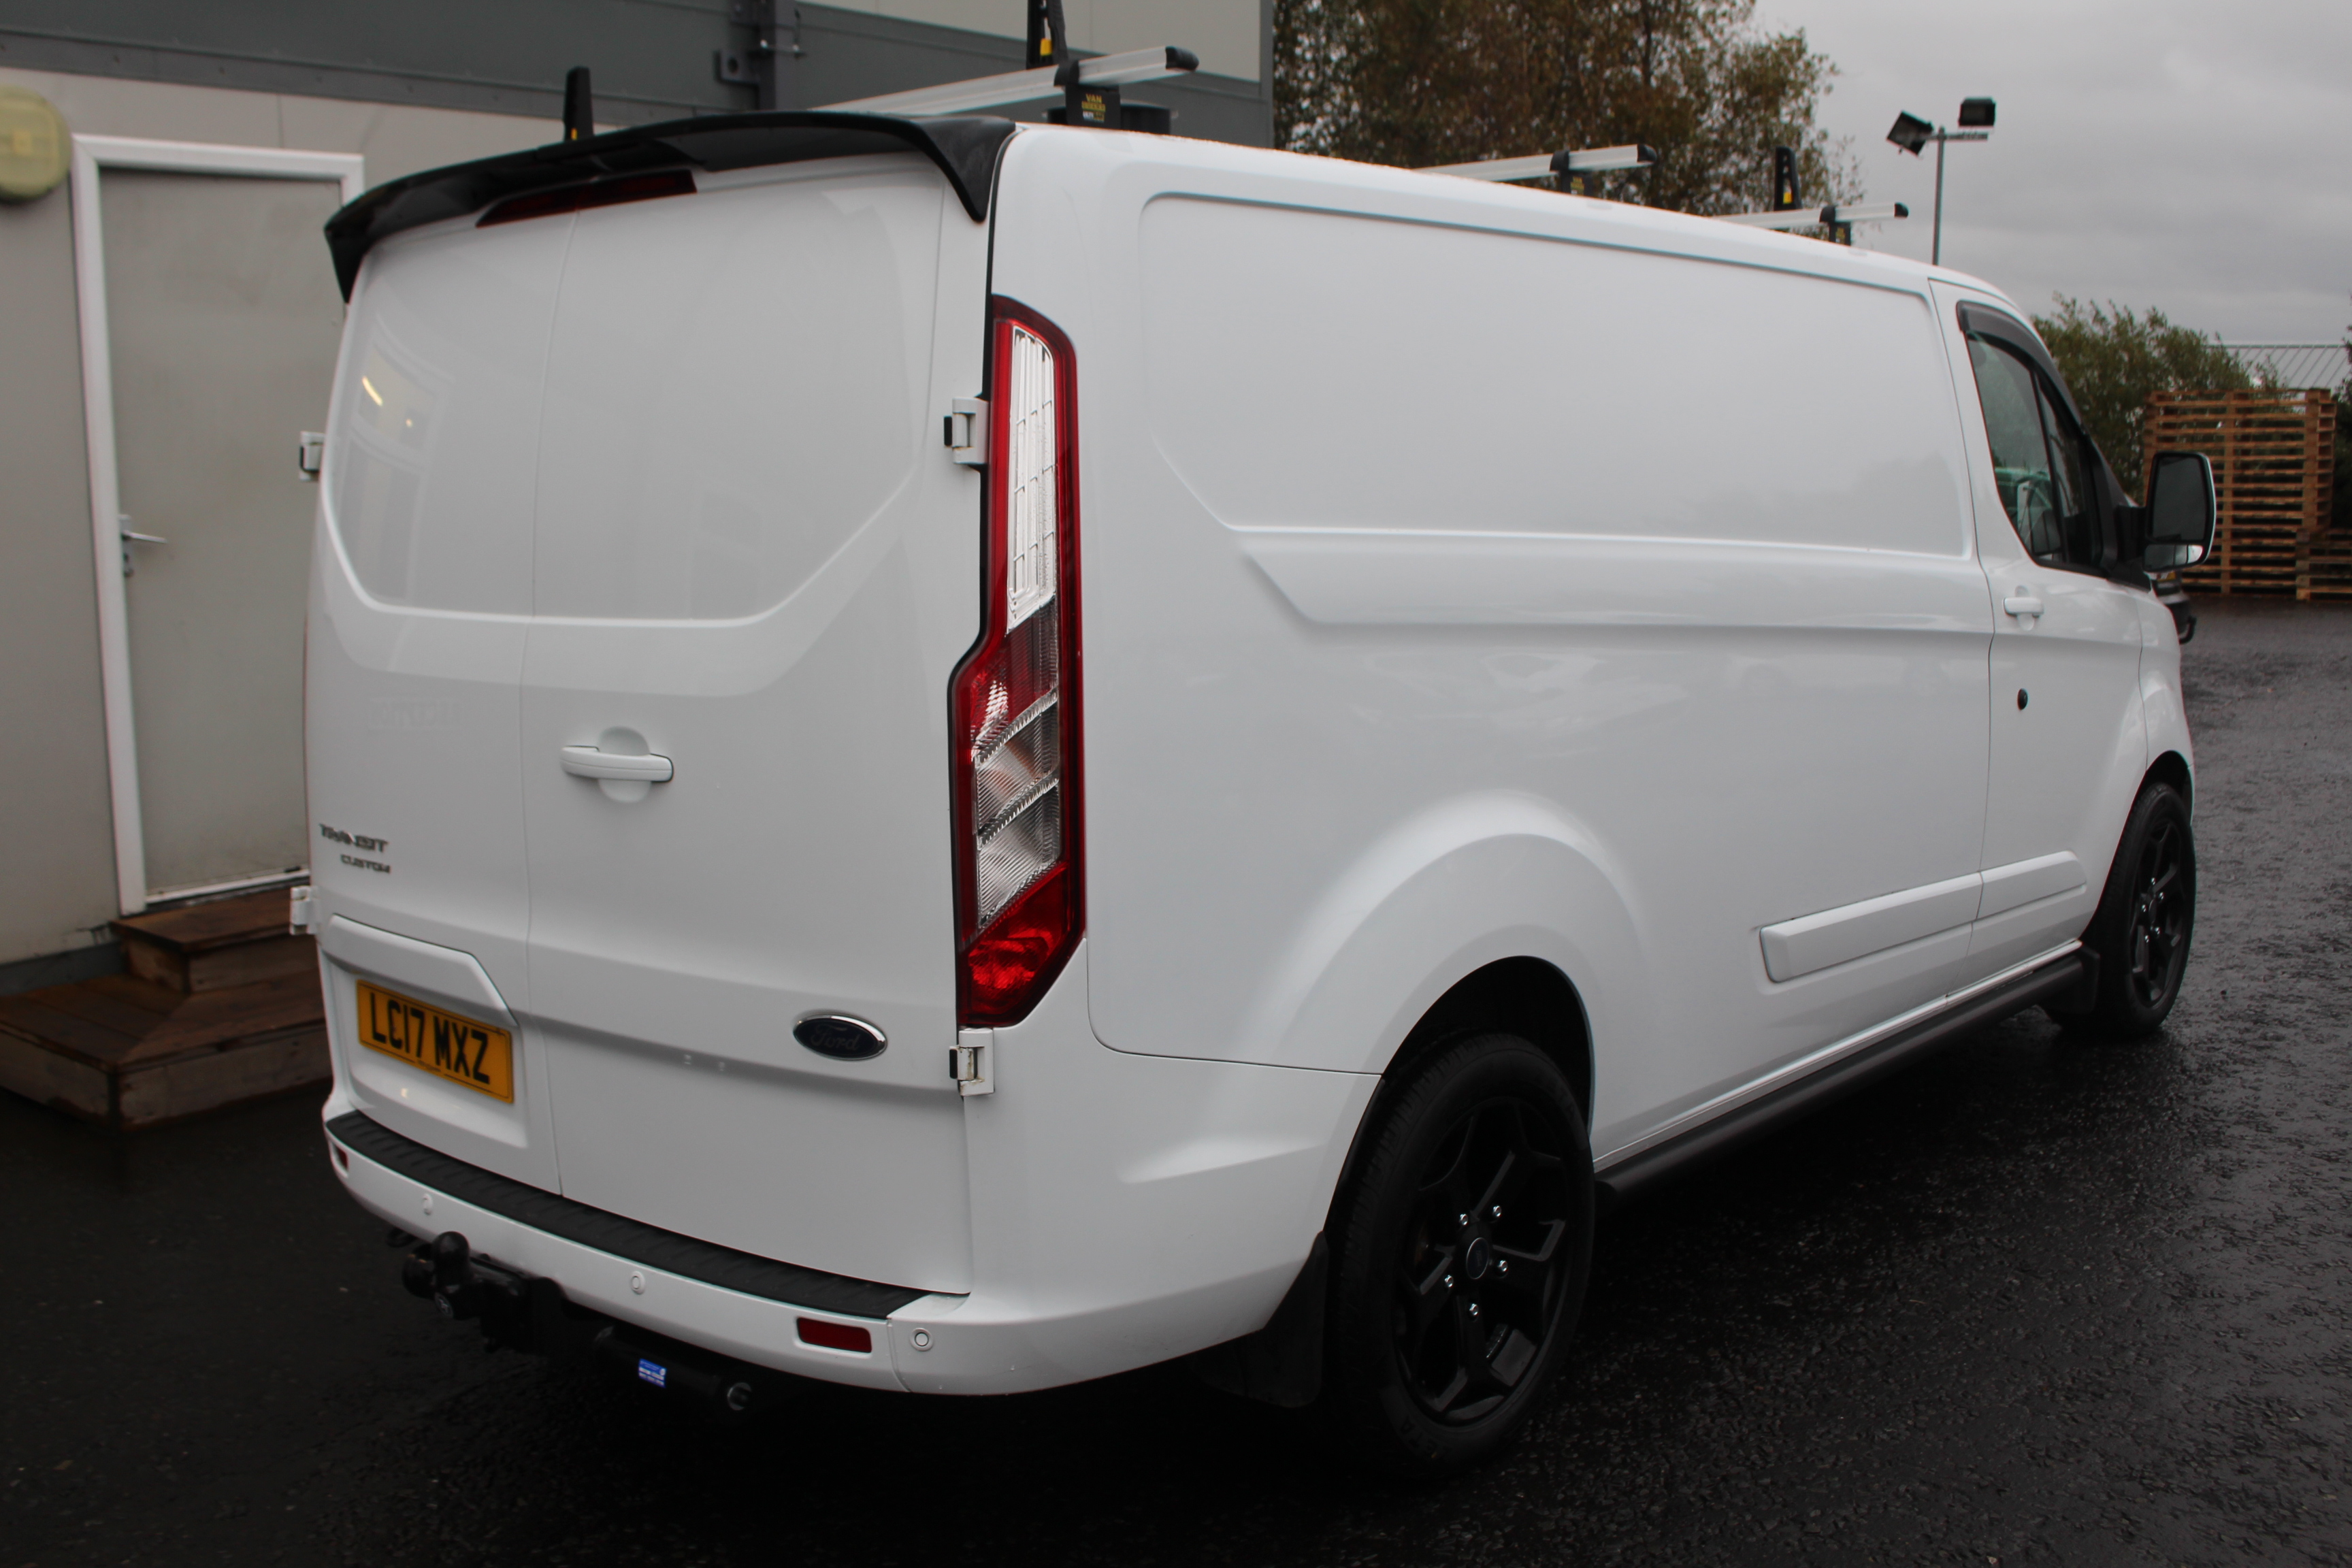 Ford Tourneo Custom modern specifications